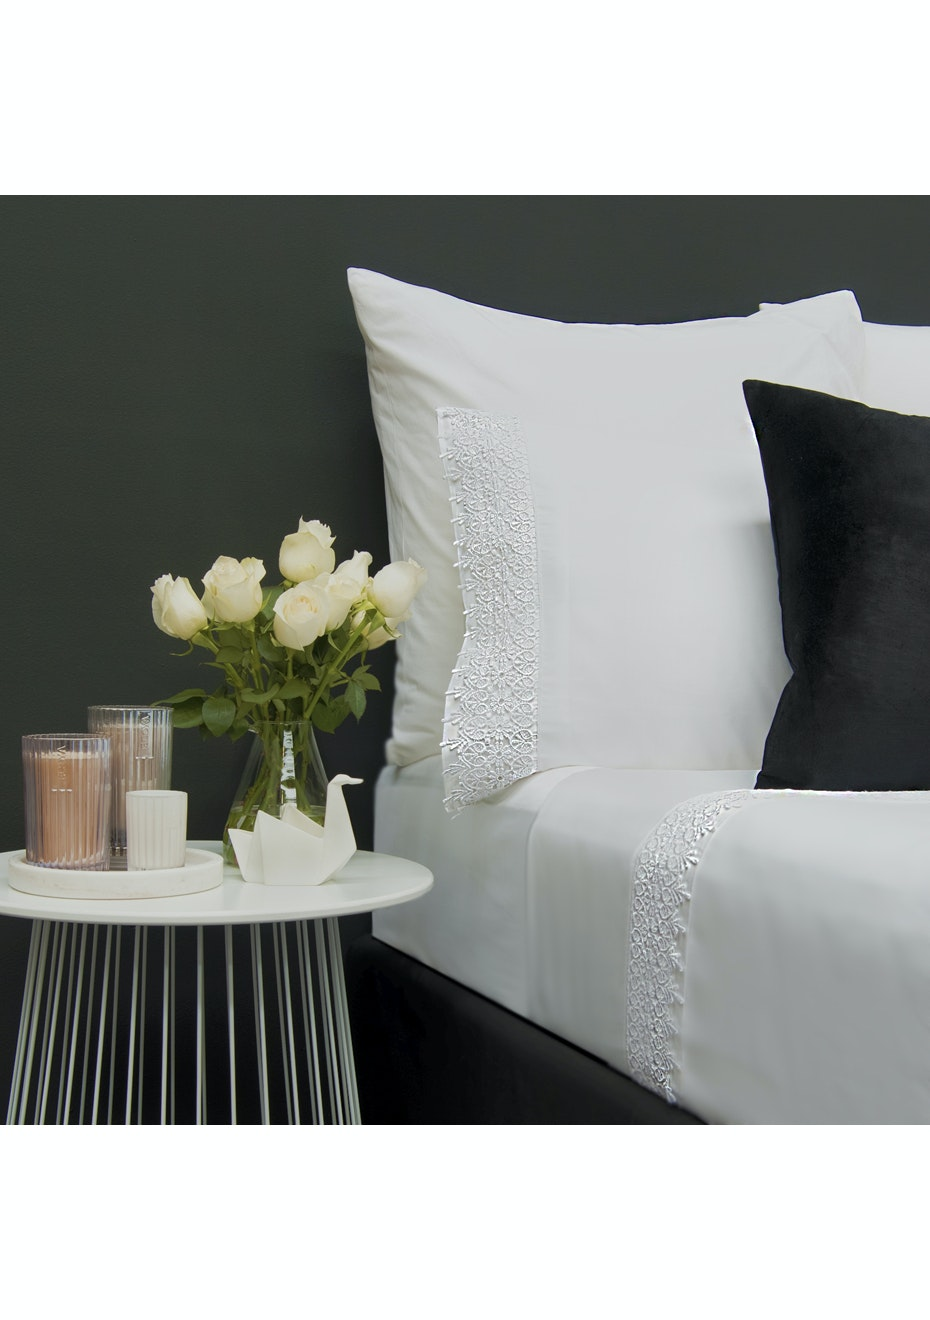 Style & Co 1000 Thread count Egyptian Cotton Hotel Collection Valencia Sheet sets King White